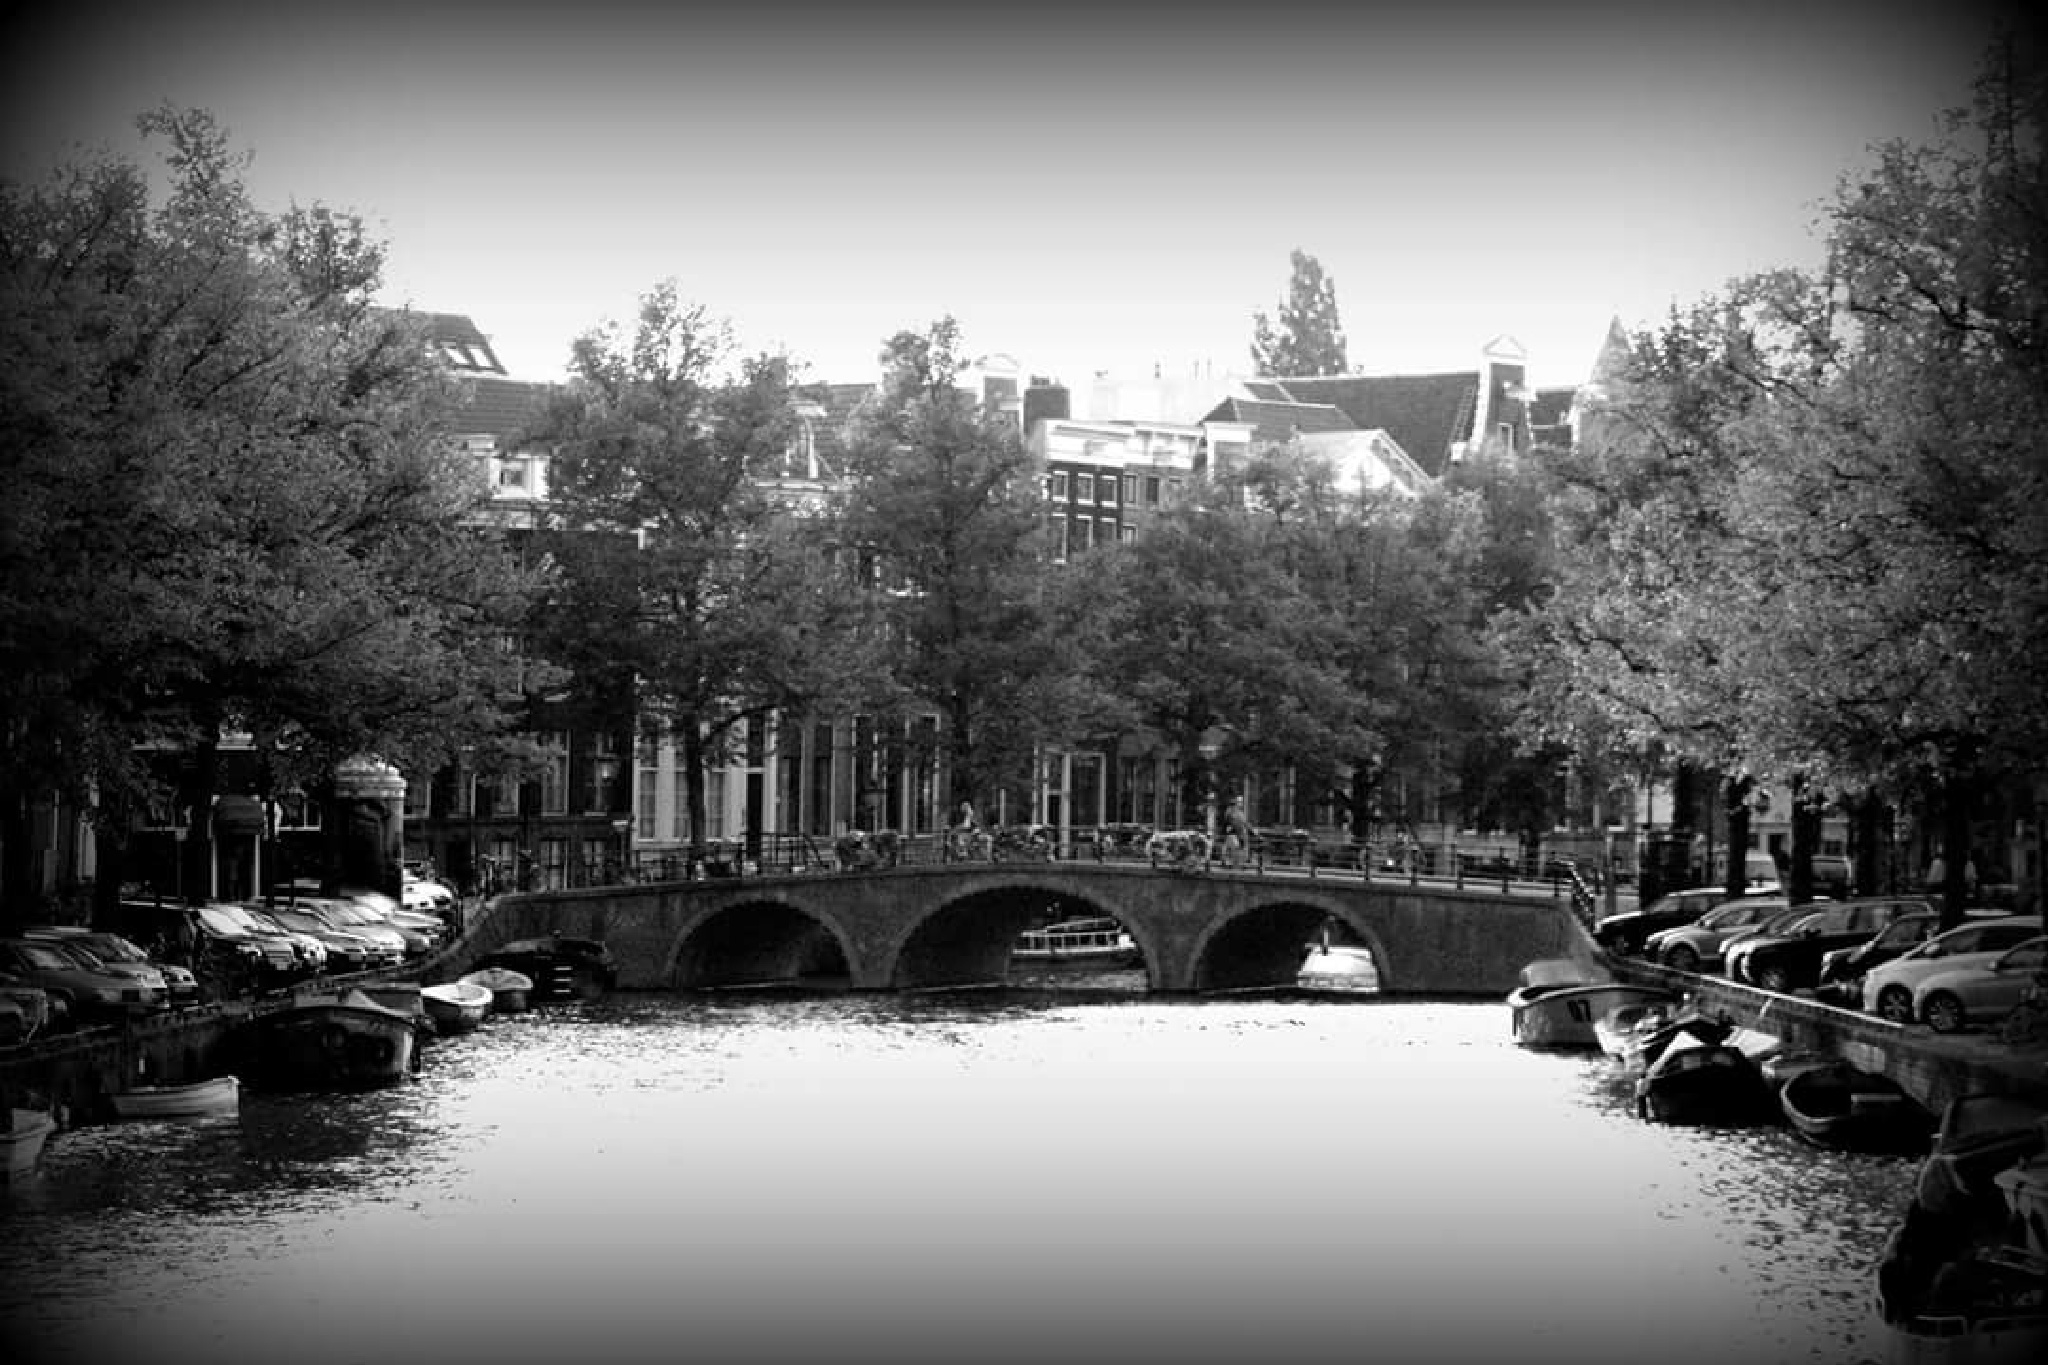 2015 Amsterdam frozen in black and white  by MF - SyracuseLUX